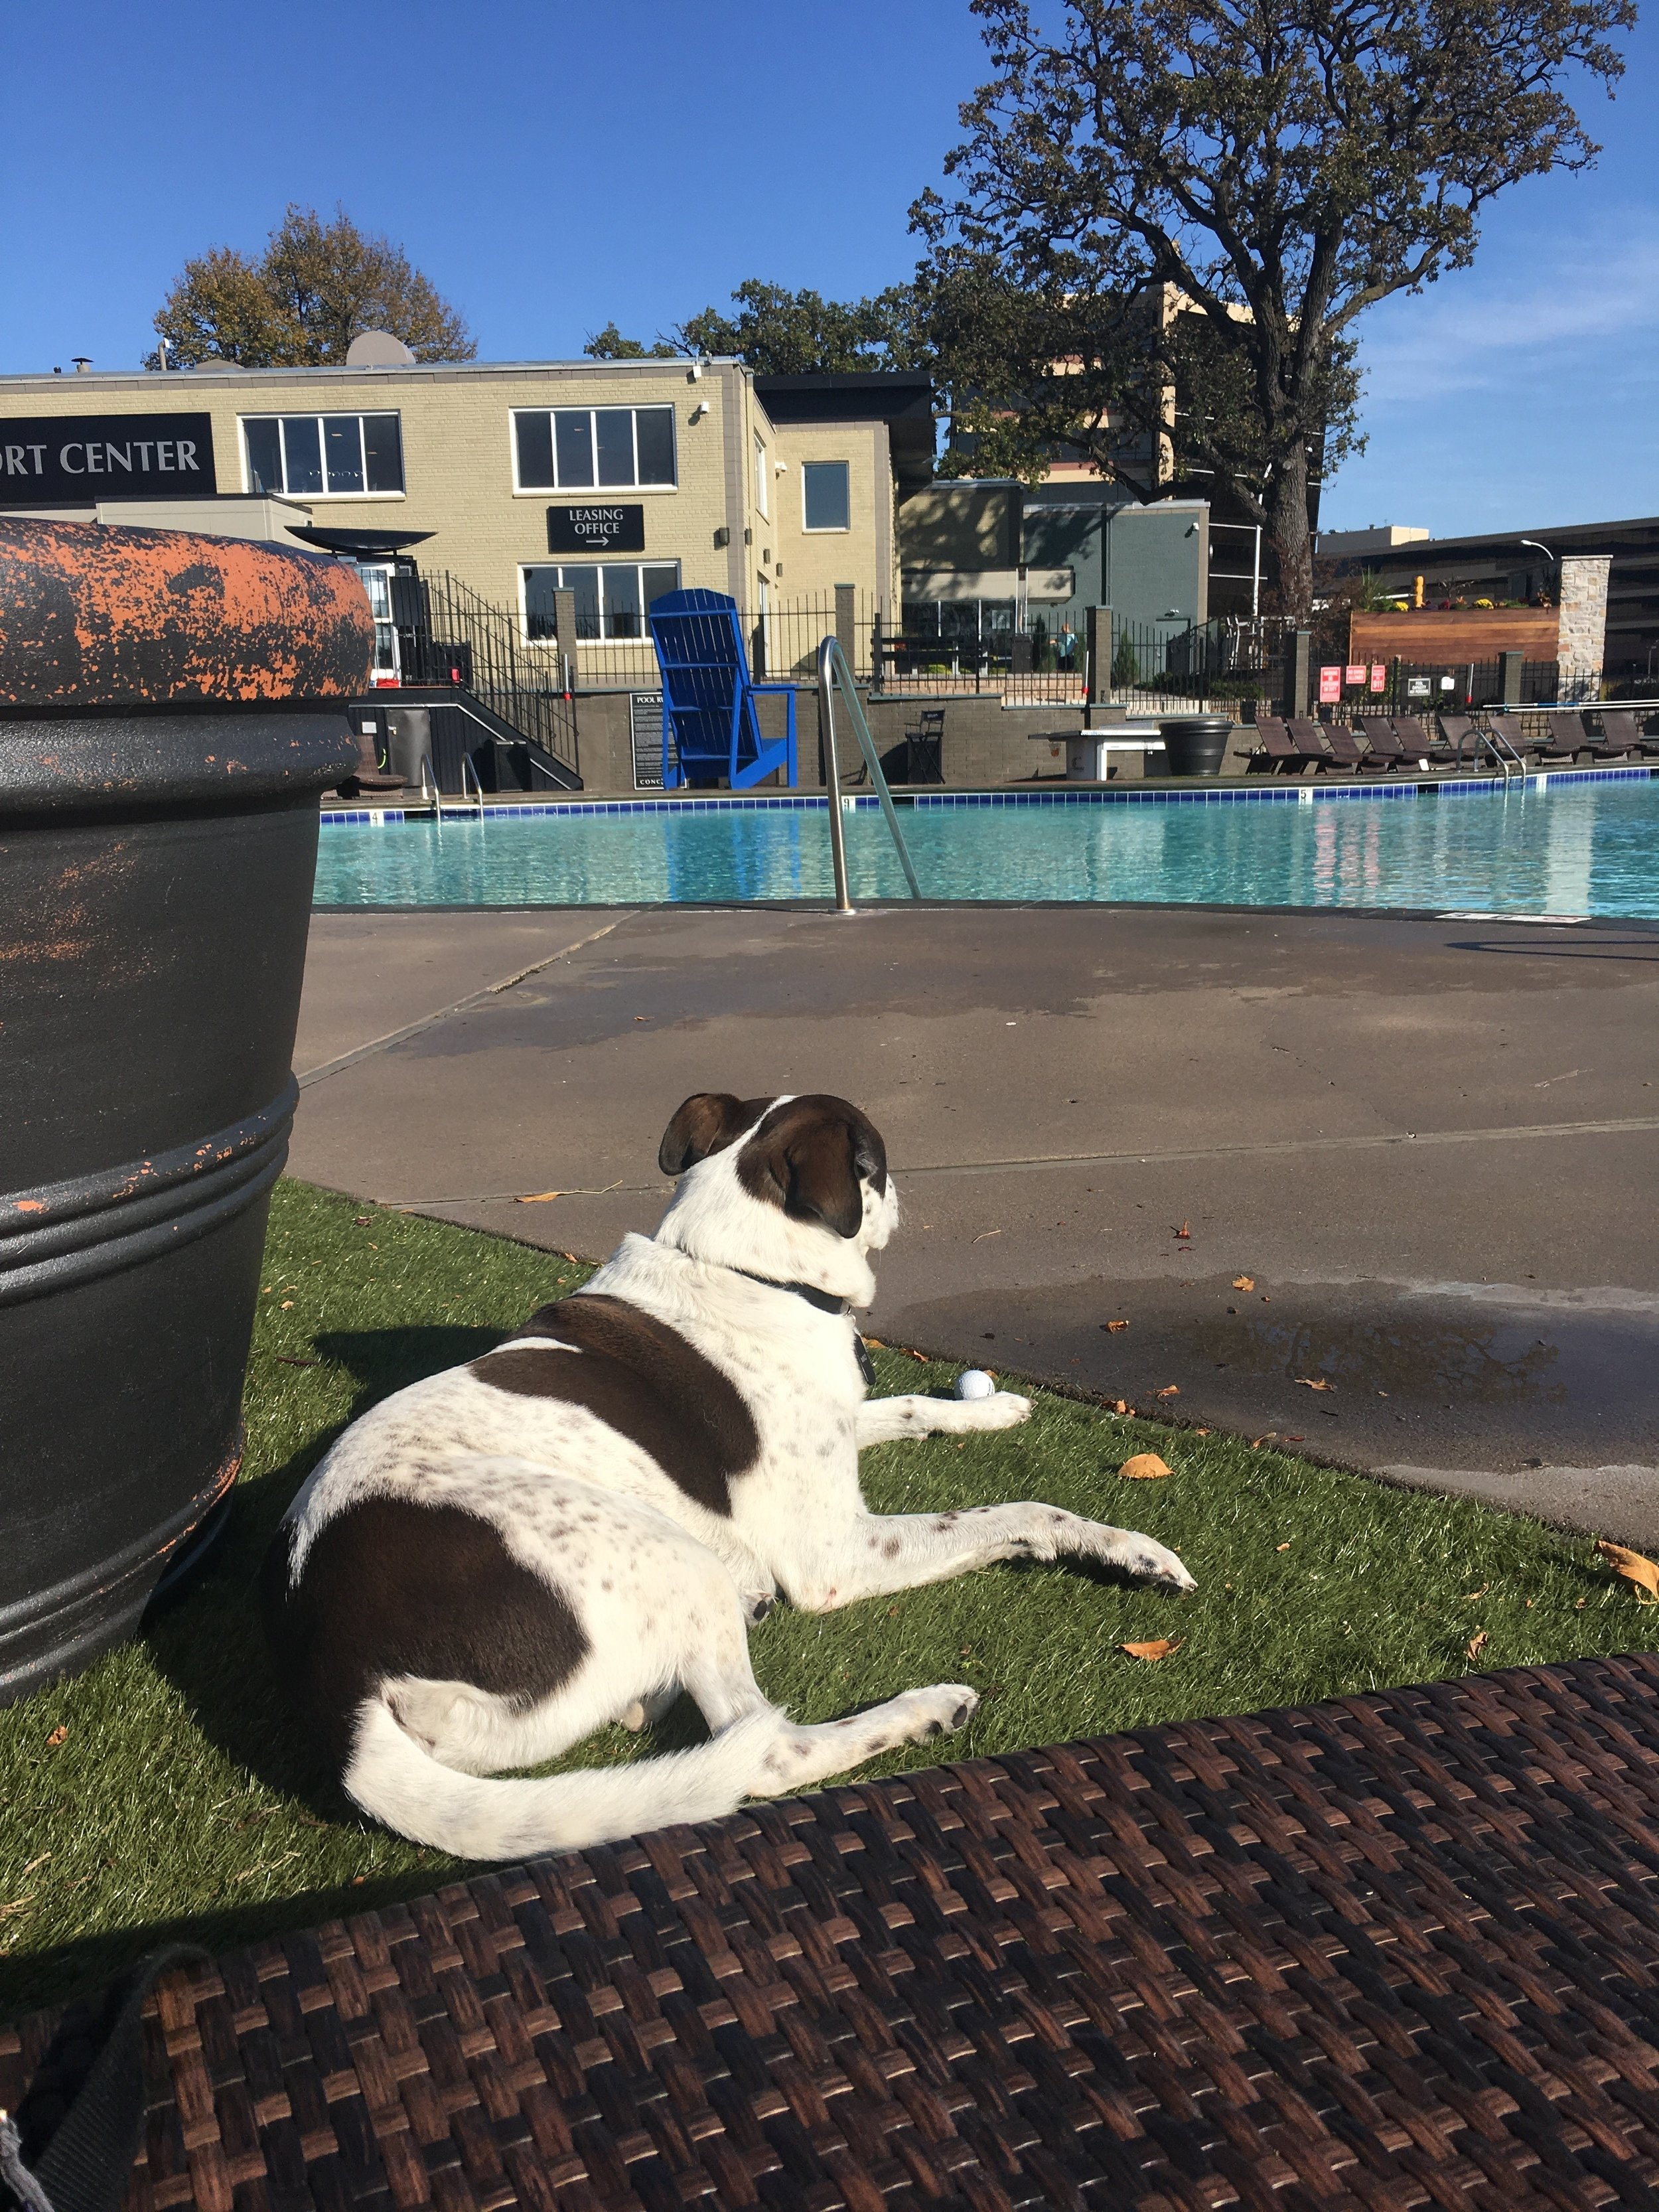 The 1 Day a Yr Dogs Allowed in the Pool Area